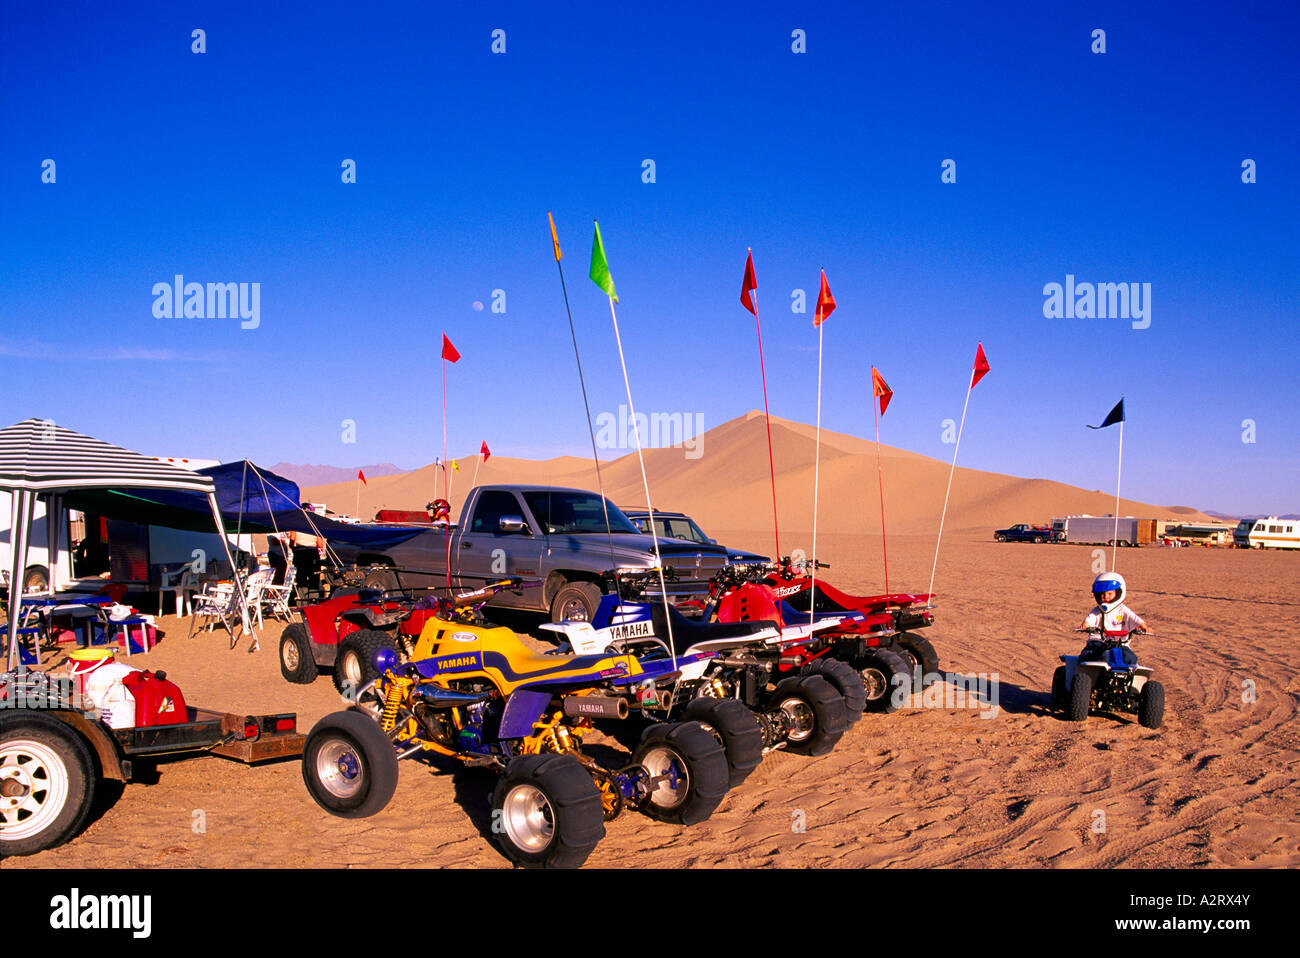 All-Terrain Vehicles at Camp at the Dumont Sand Dunes near Death Valley National Park California USA - Stock Image